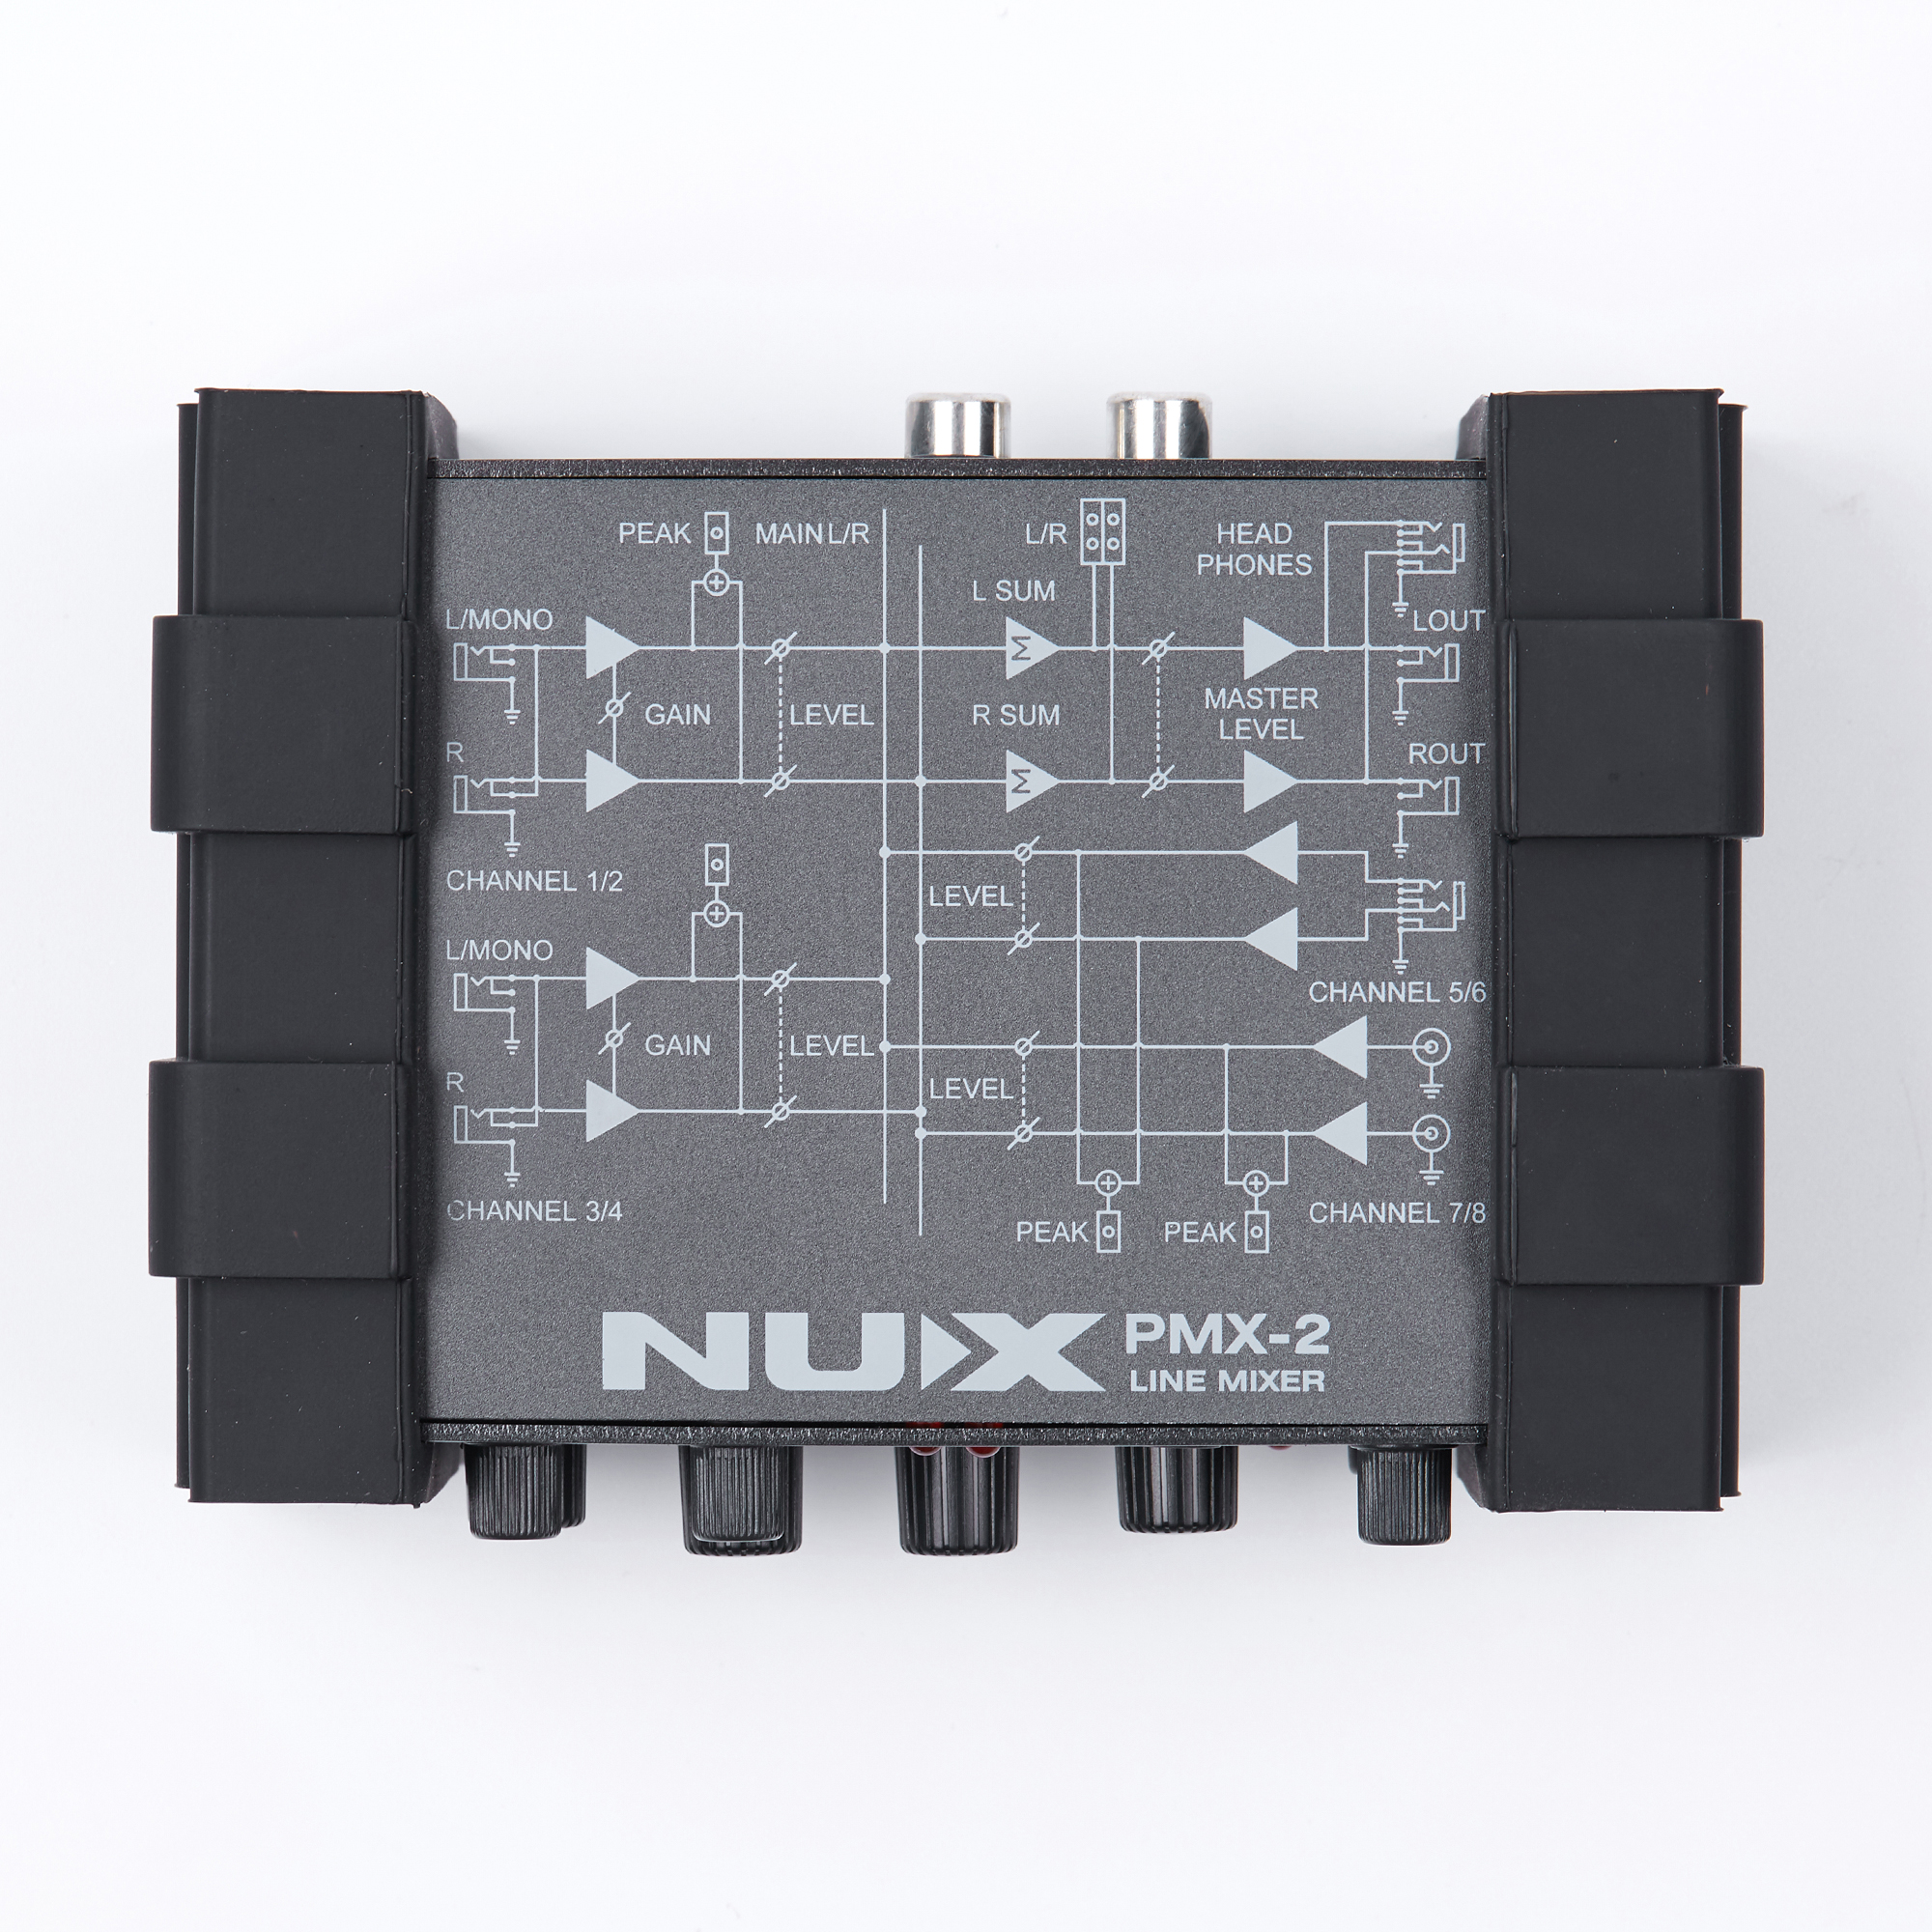 Gain Control 8 Inputs and 2 Outputs NUX PMX-2 Multi-Channel Mini Mixer 30 Musical Instruments Accessories for Guitar Bass Player herald percy колье с жемчужными бусинами